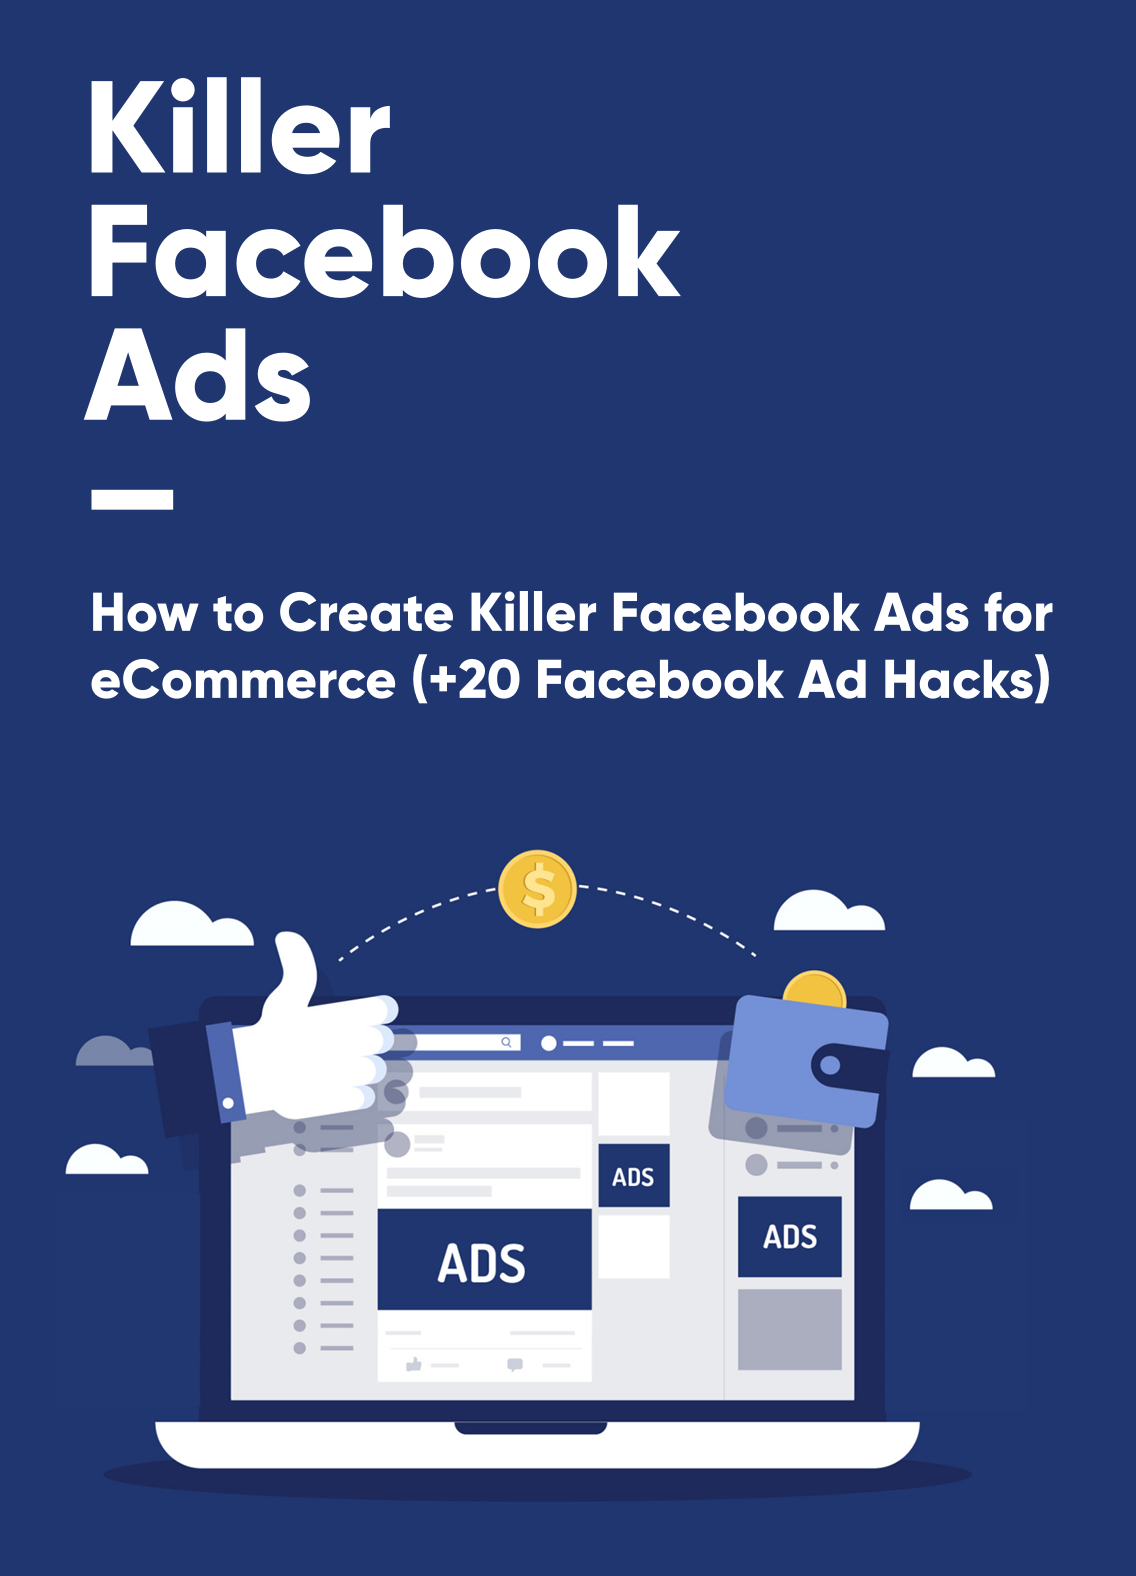 Killer Facebook Ads - The Ultimate Guide [2021 Edition]